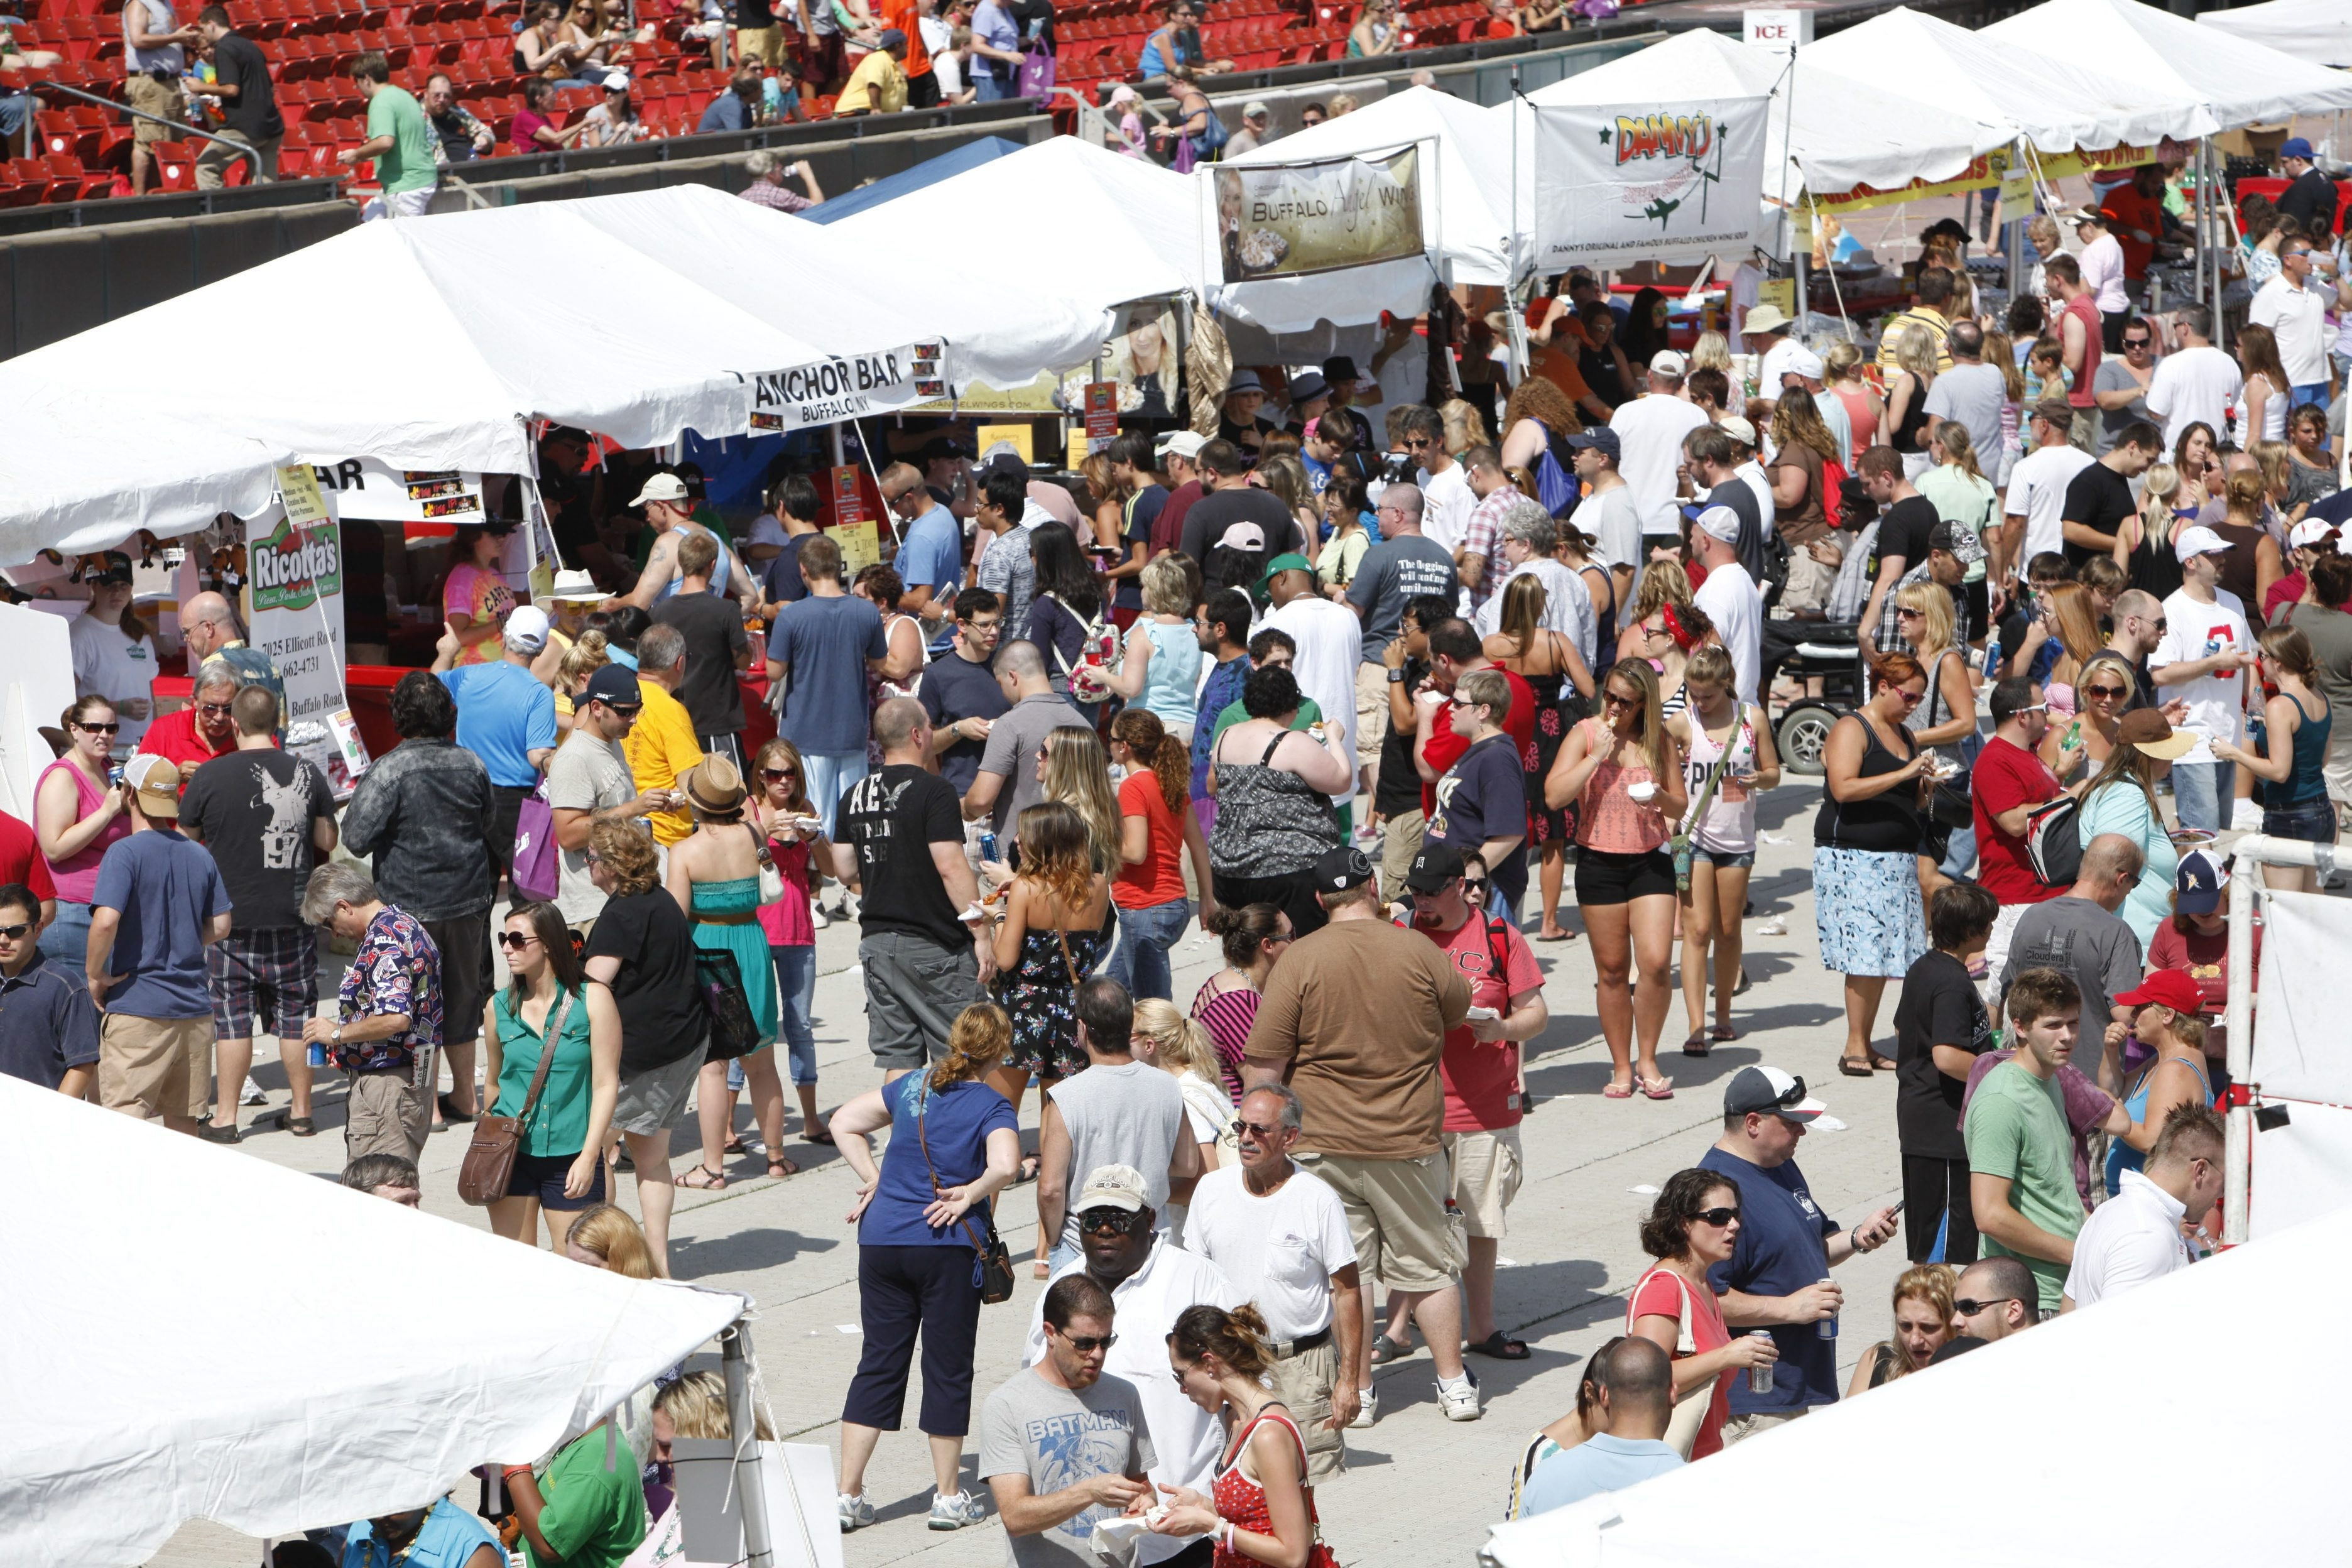 A crowd showed up for last year's National Buffalo Wing Festival at Coca-Cola Field.